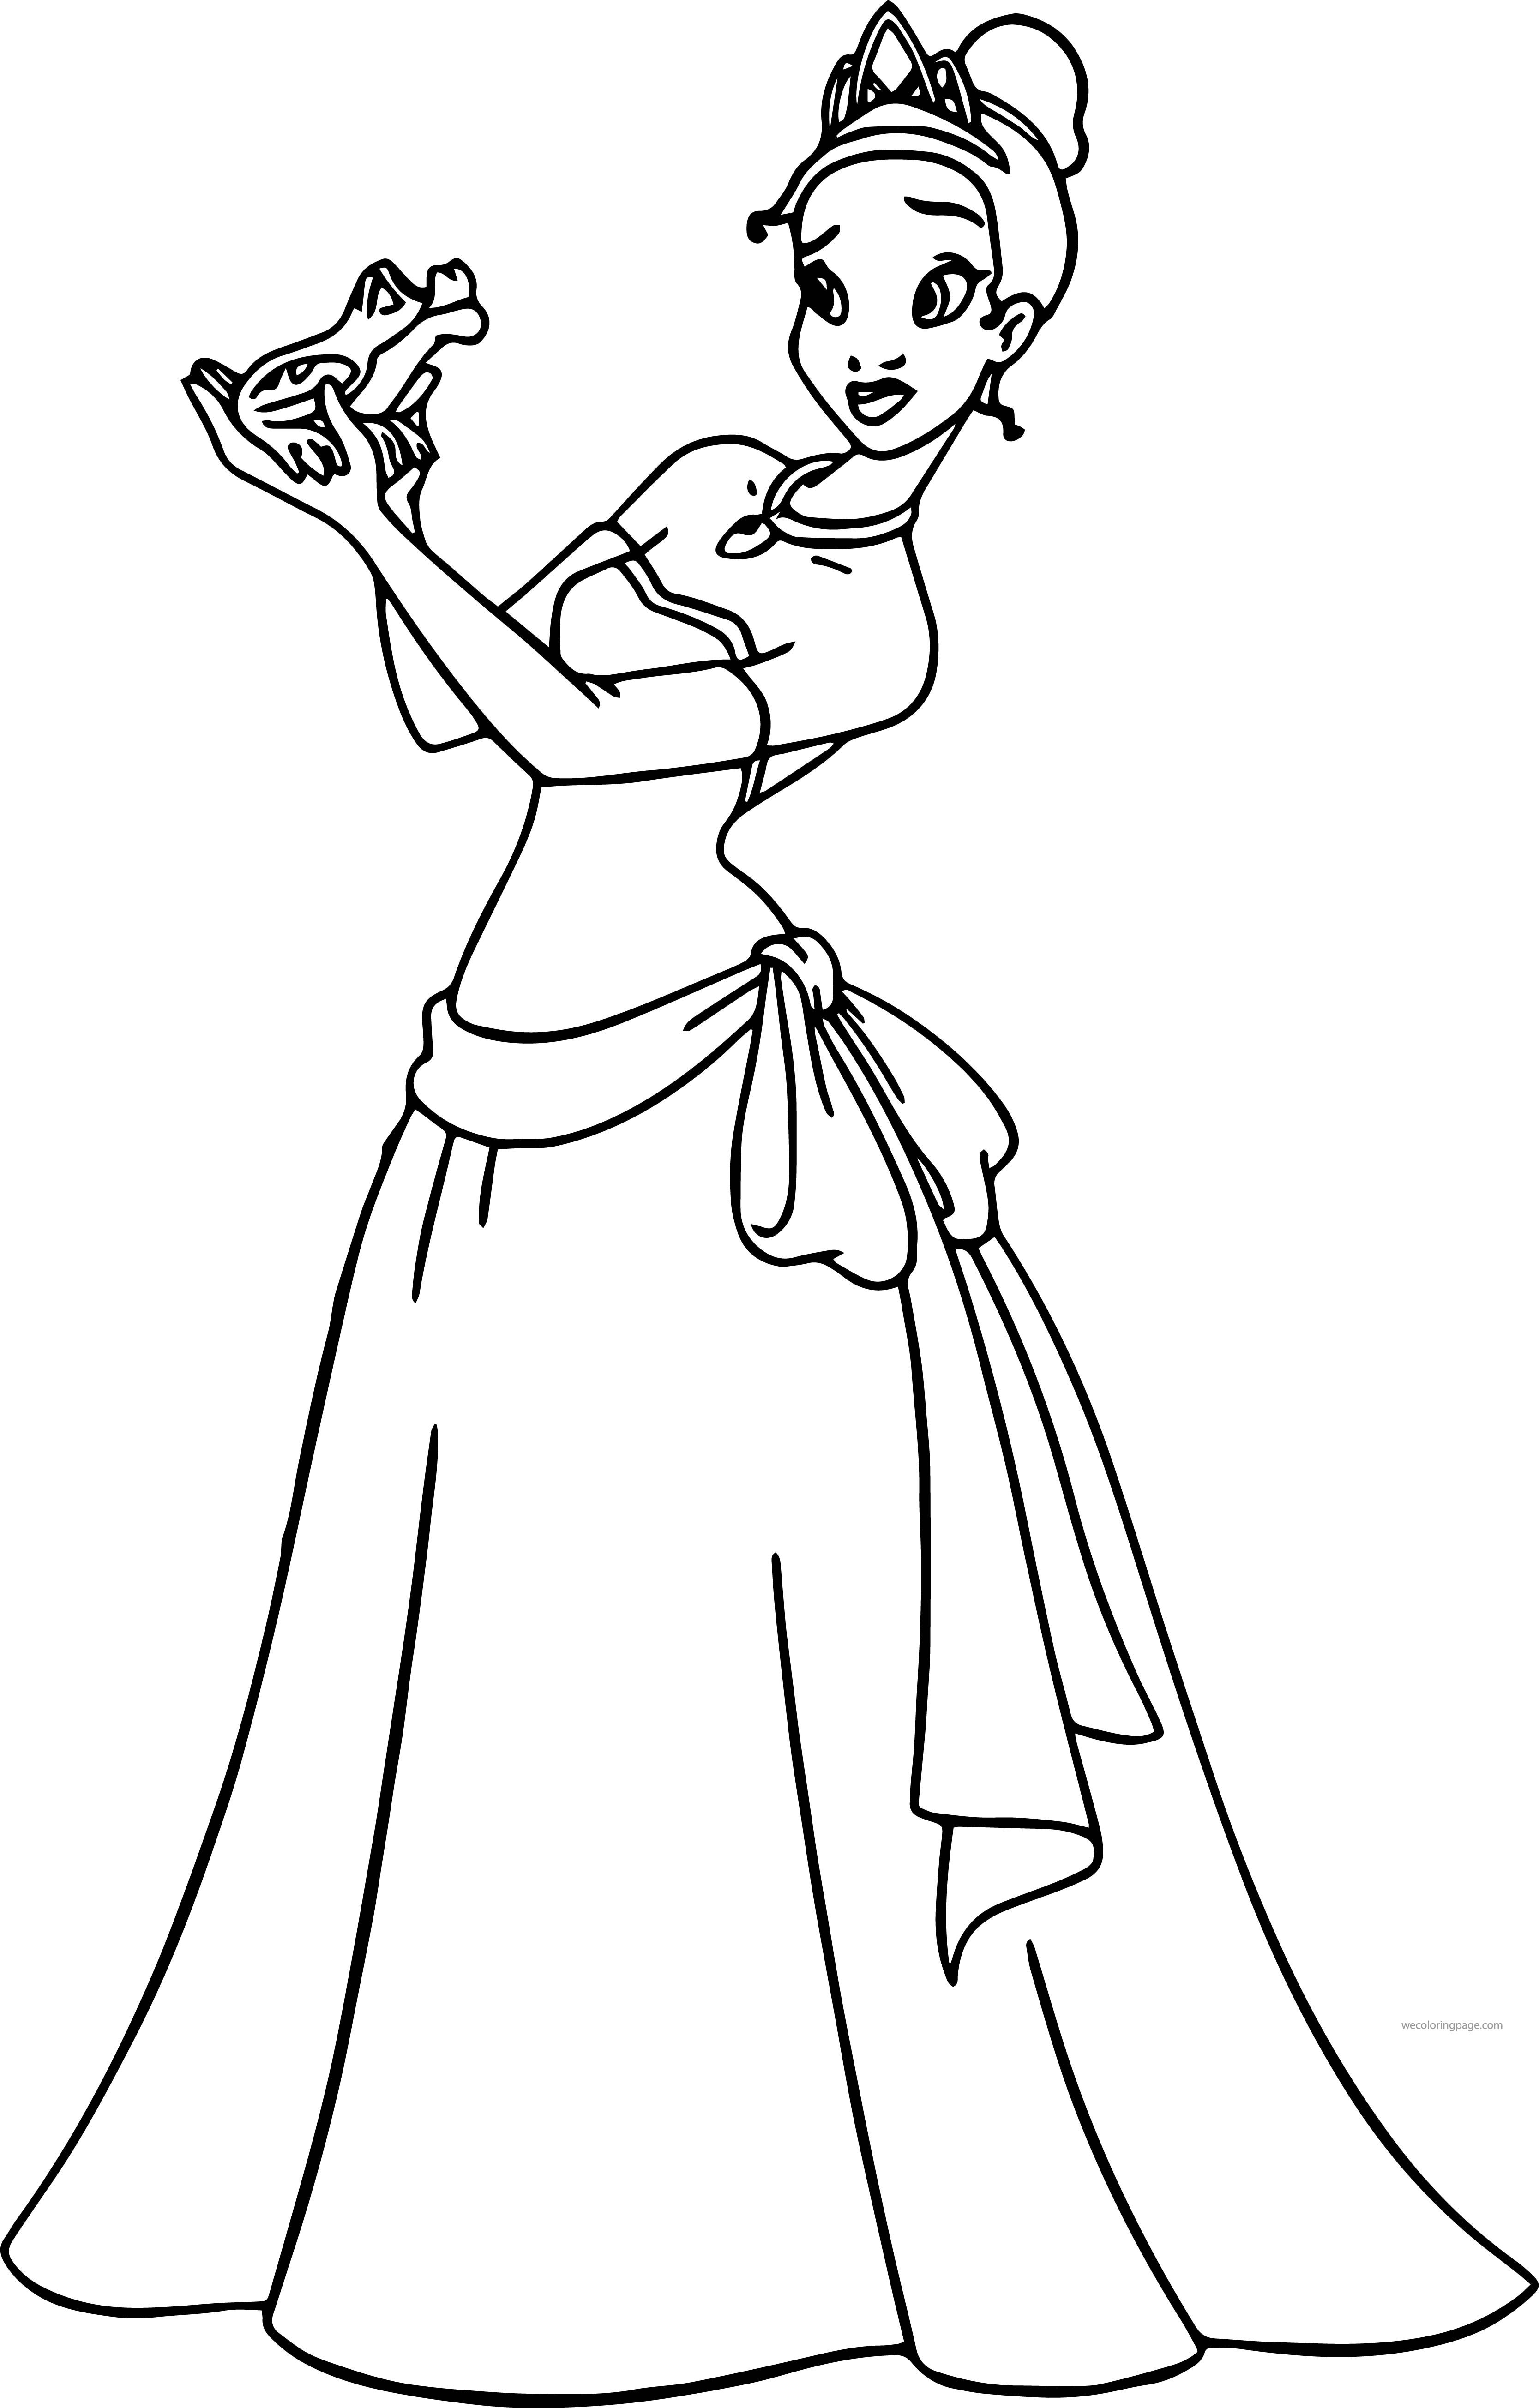 Kissing Frog Coloring Pages Coloring Coloring Pages